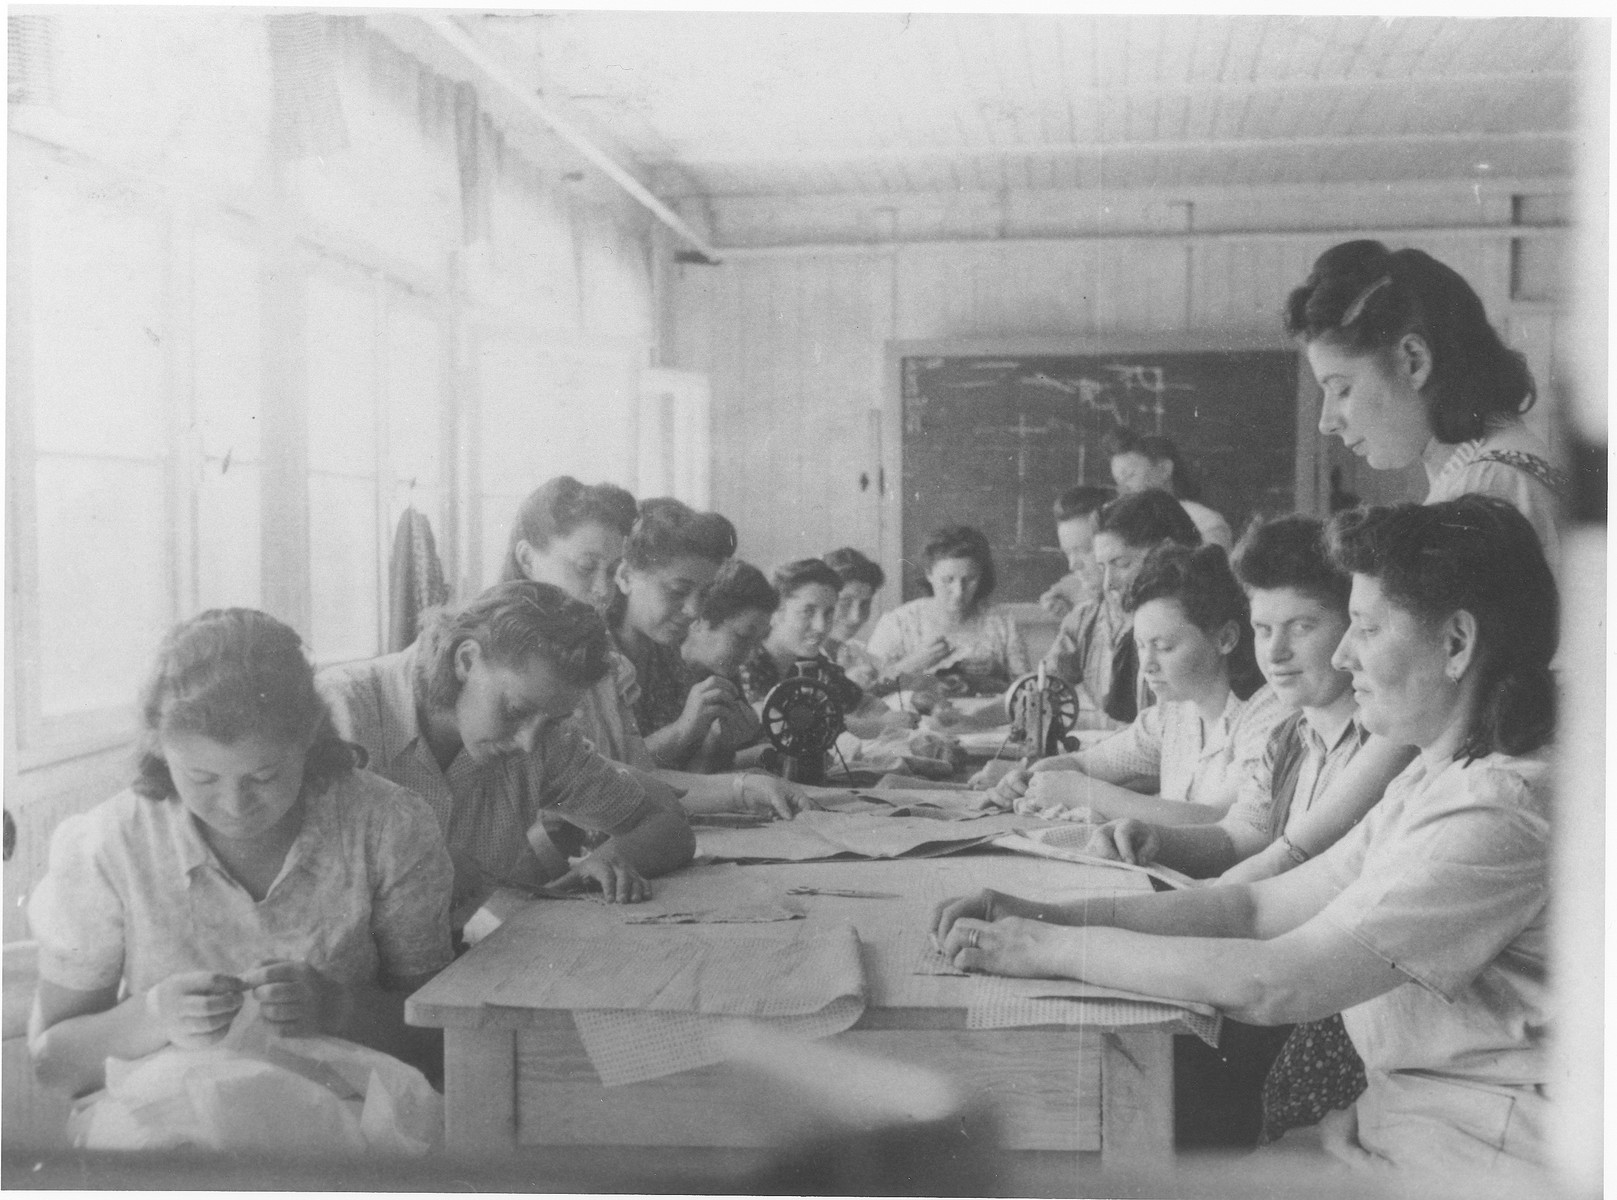 Women learn to sew in an ORT workshop in the Feldafing displaced persons camp.  Among those pictured are Zlata (Distel) Malcmacher (seated third from the right) and Chaya Zarenbrok (seated at the front left).